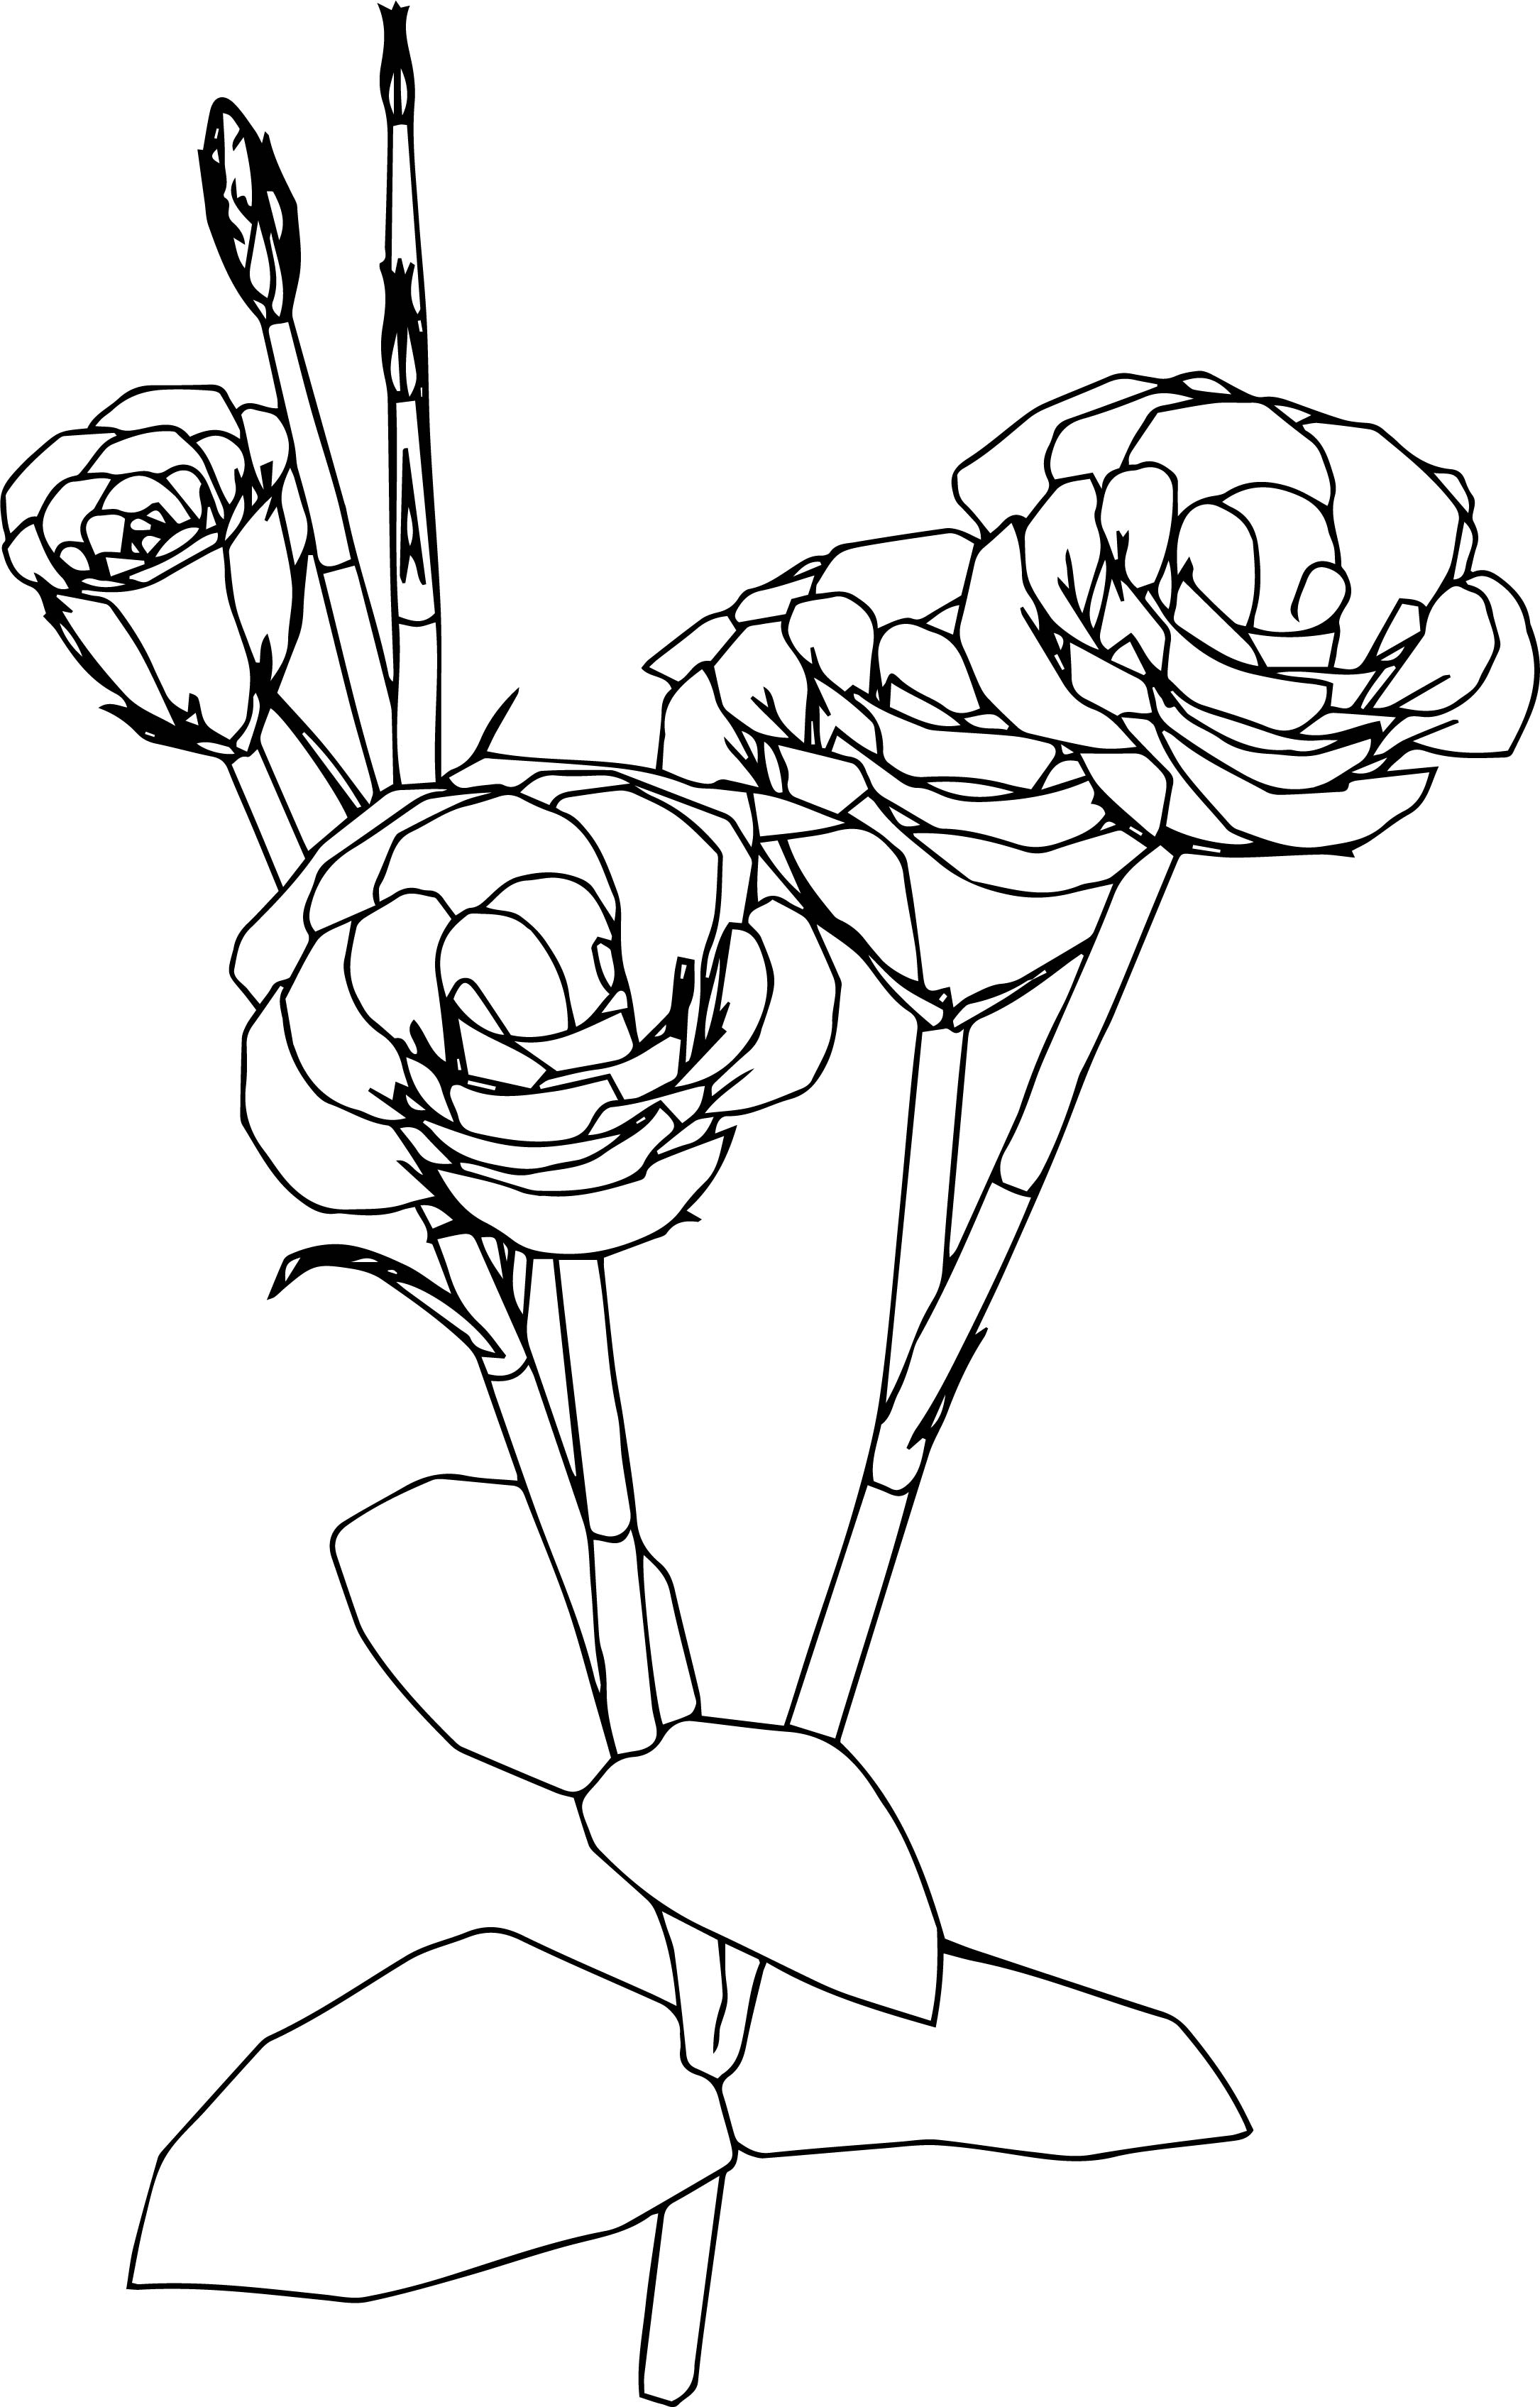 Just Flower Coloring Page